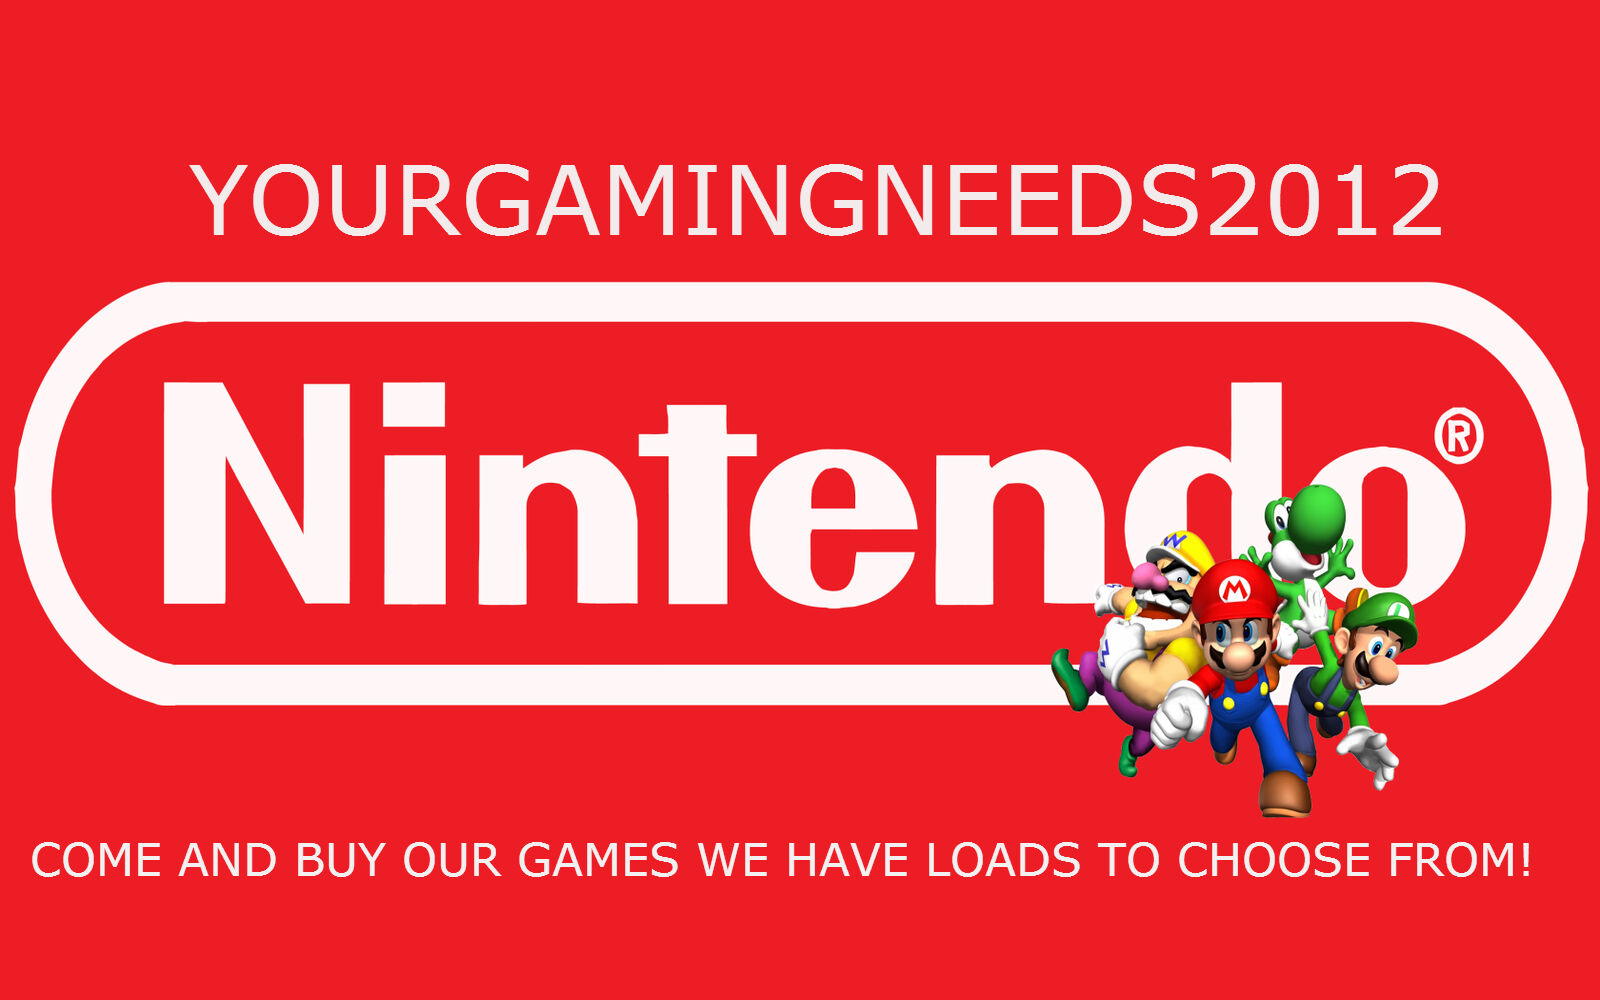 YourGamingNeeds2012